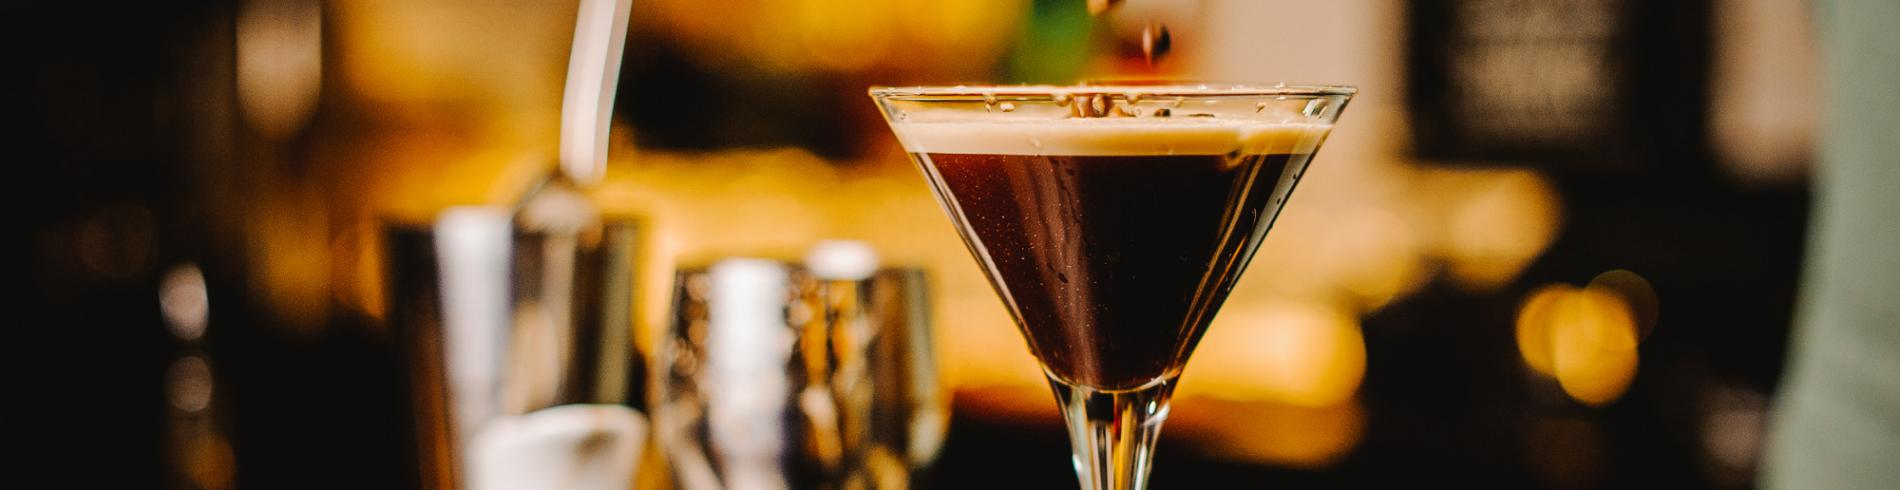 Fuel up with an espresso martini